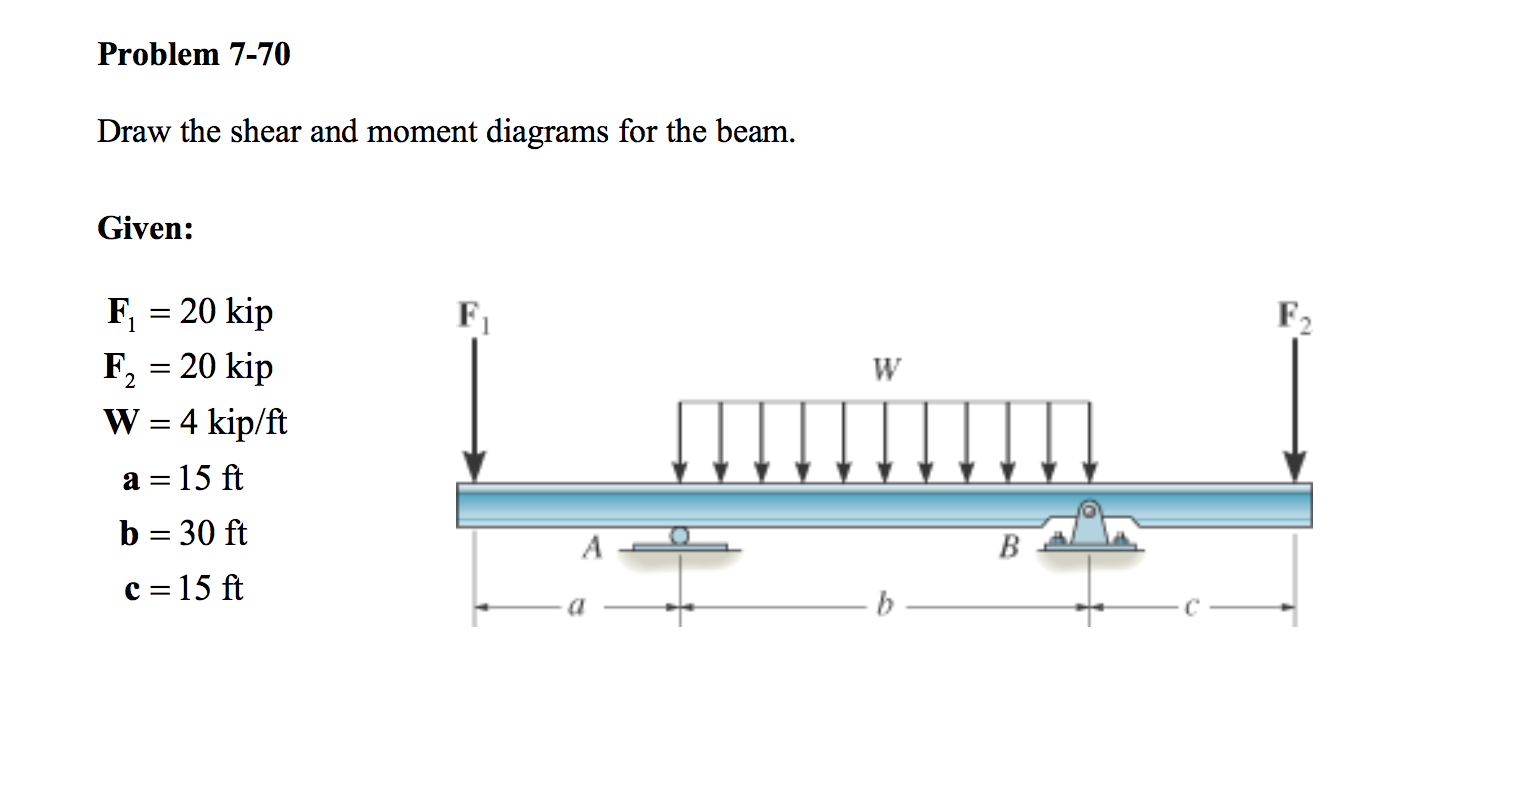 solved draw the shear and moment diagrams for the beam g beam shear and moment diagrams software beam design formulas shear and moment diagrams